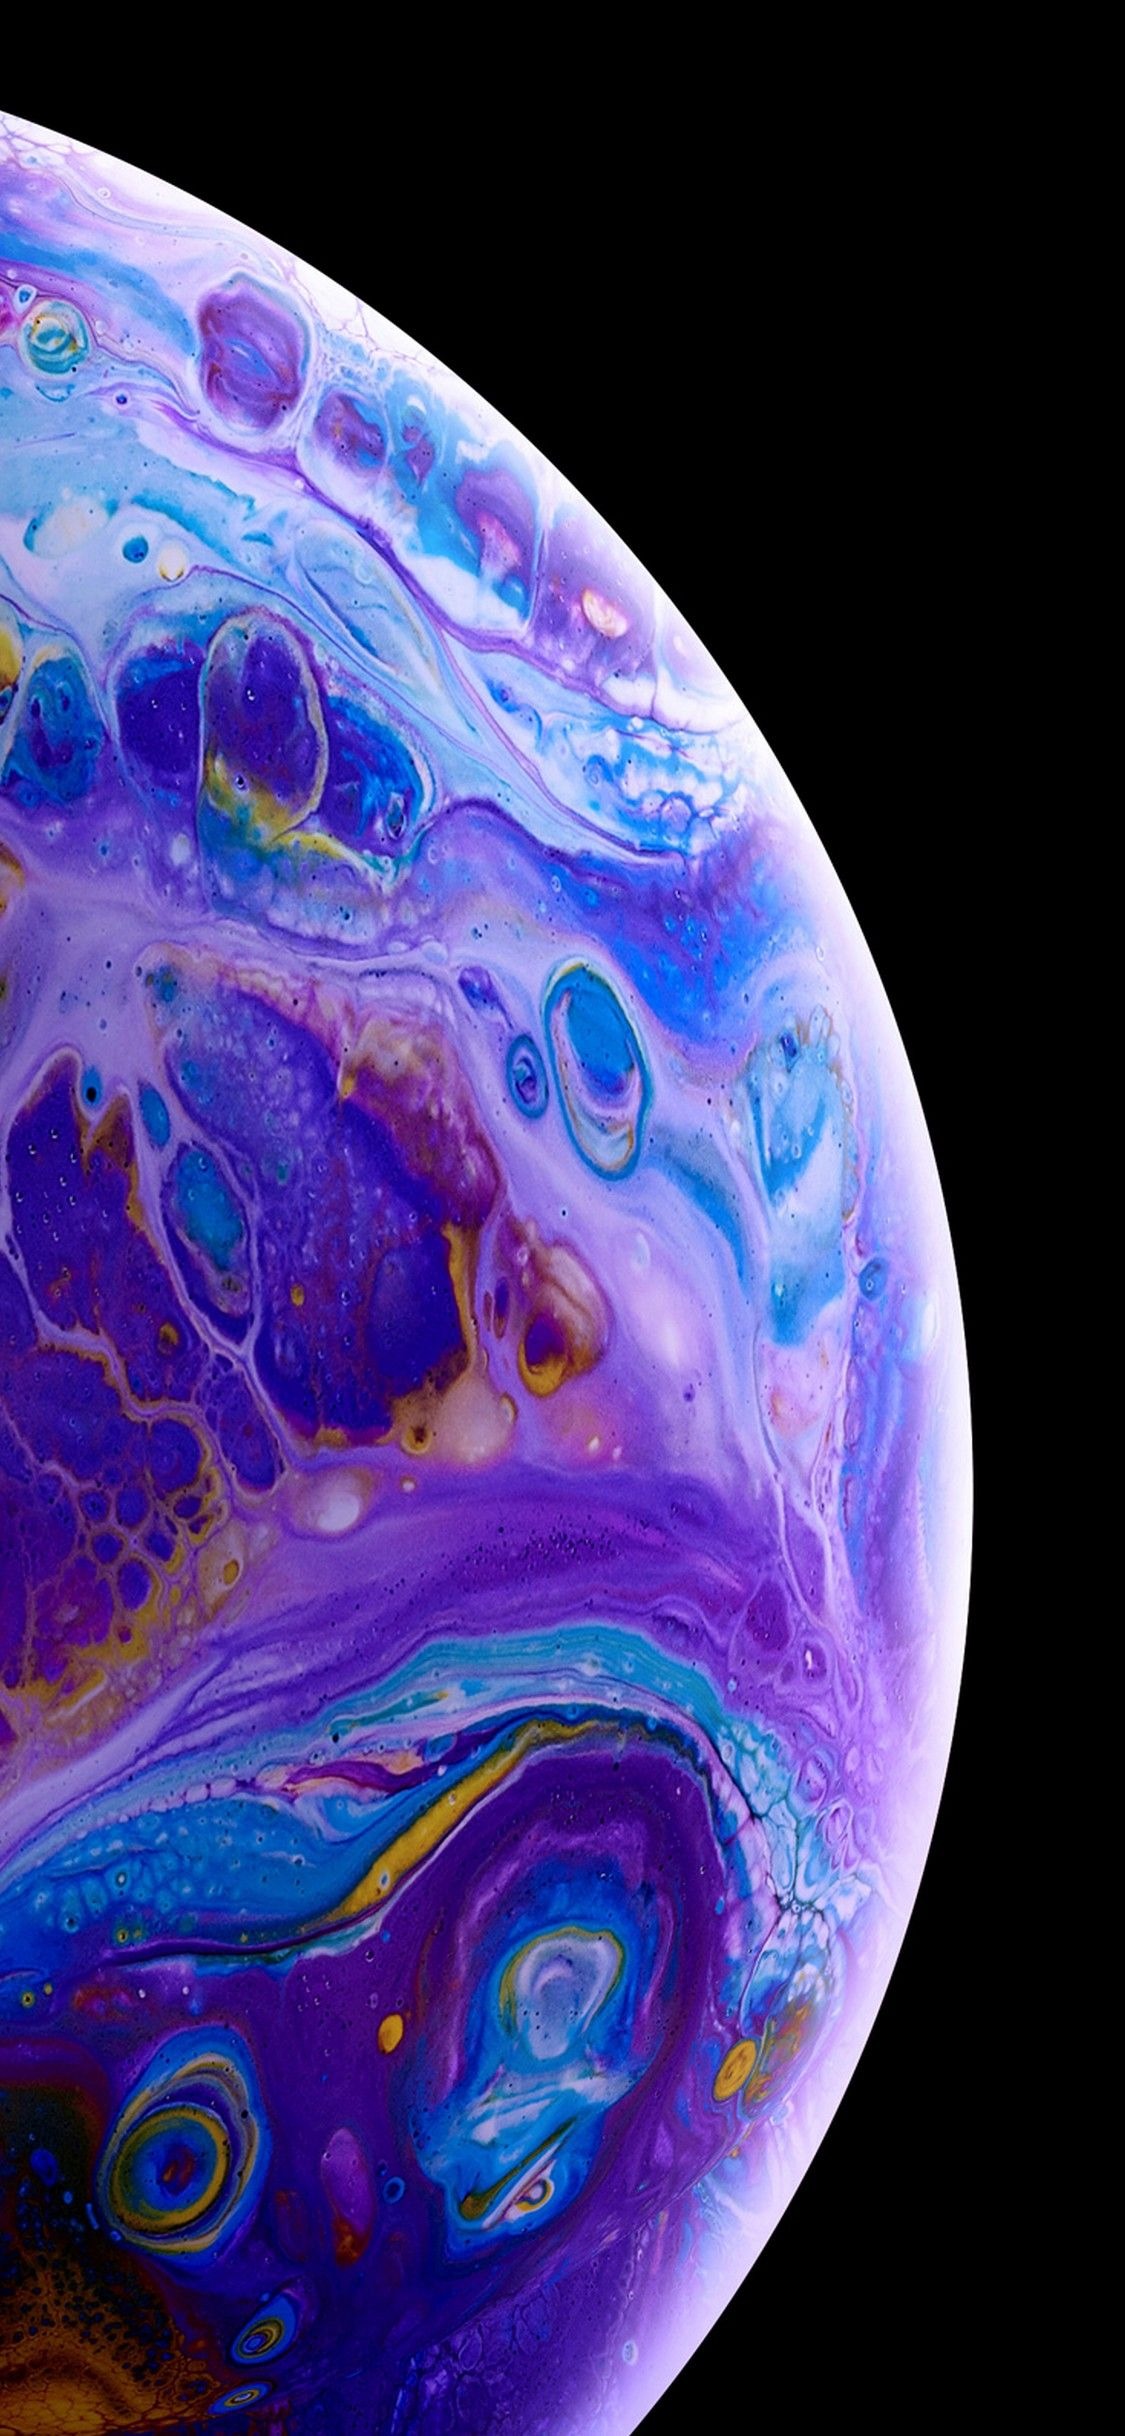 New iPhone XS Wallpapers on WallpaperDog